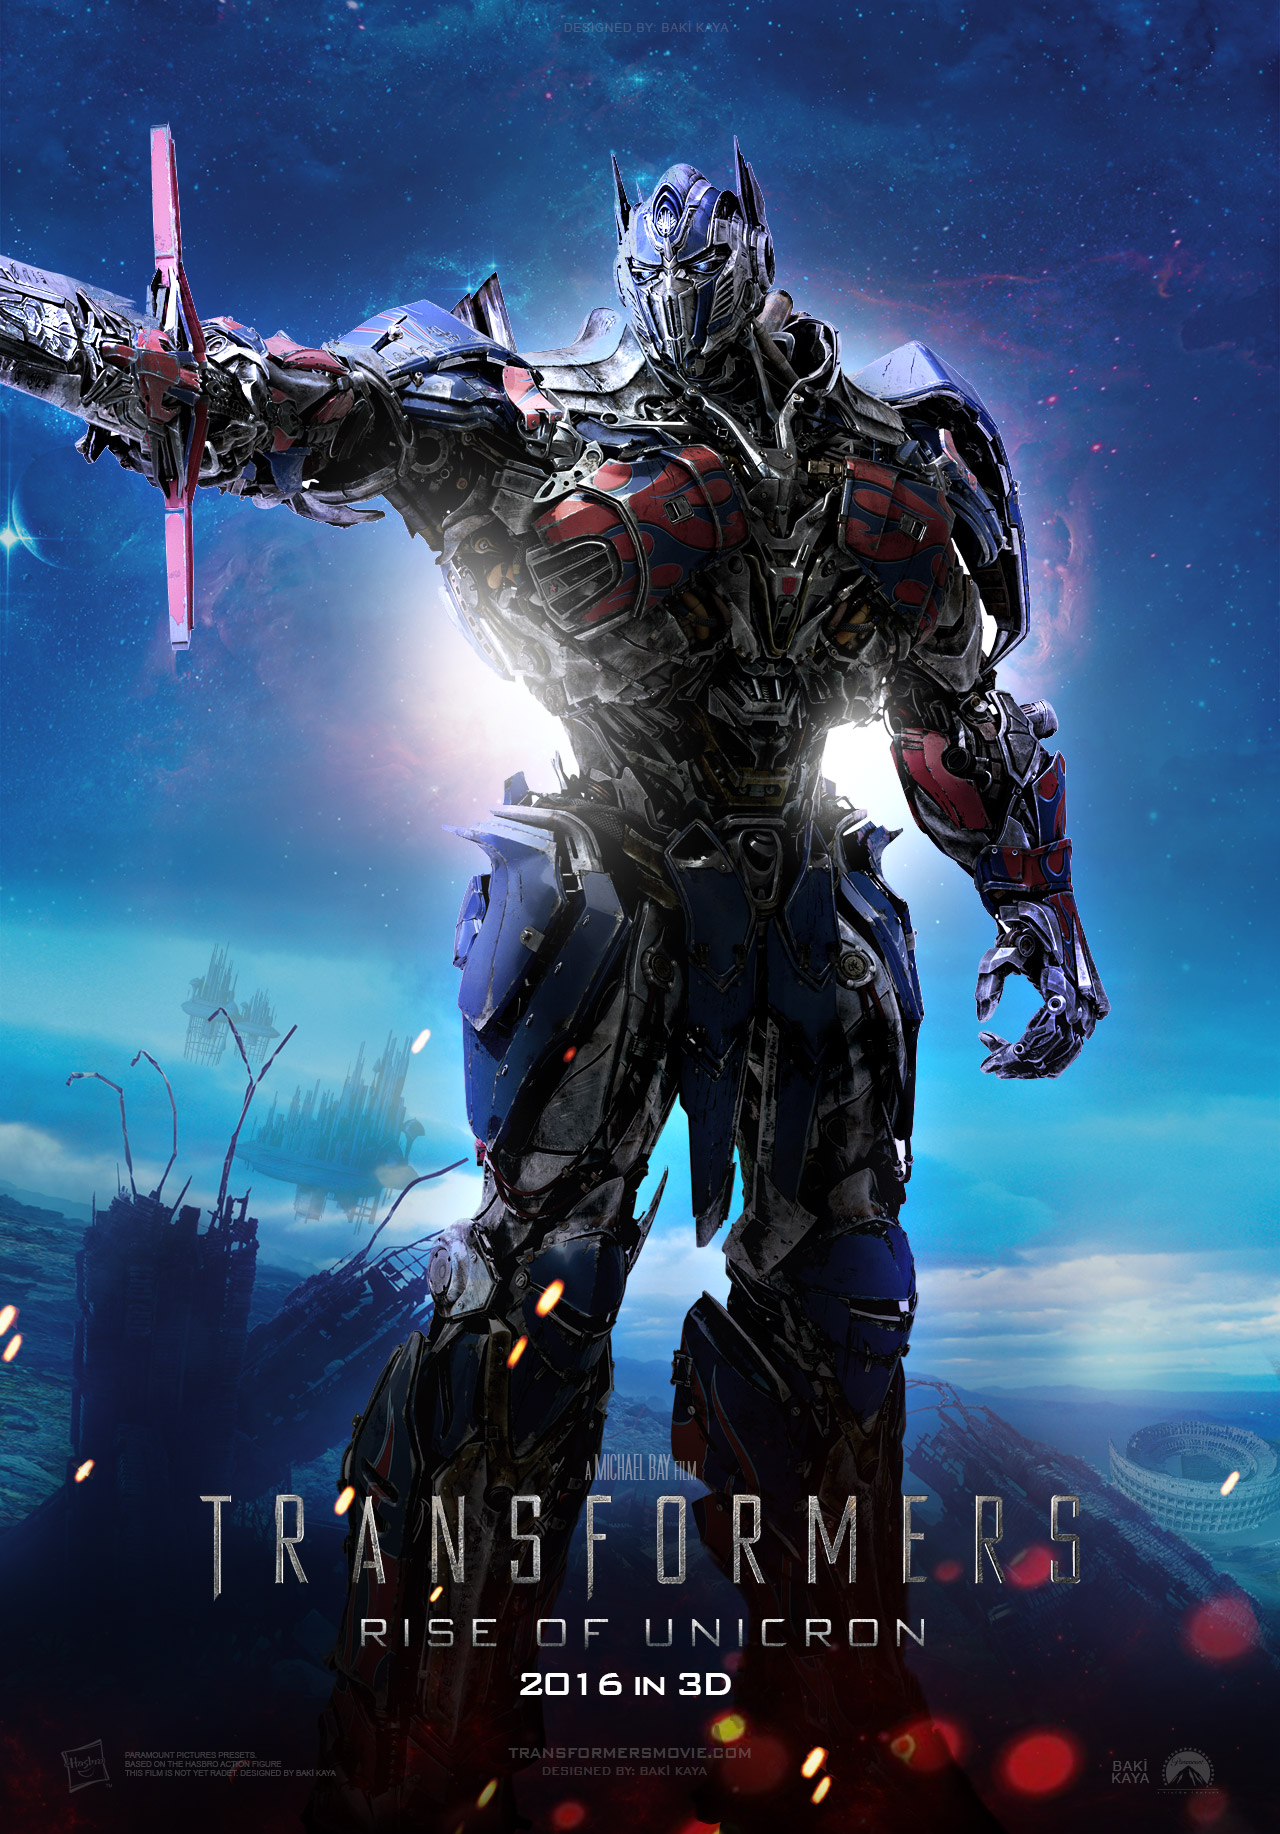 Transformers 5 Full HDTransformers 5 Poster